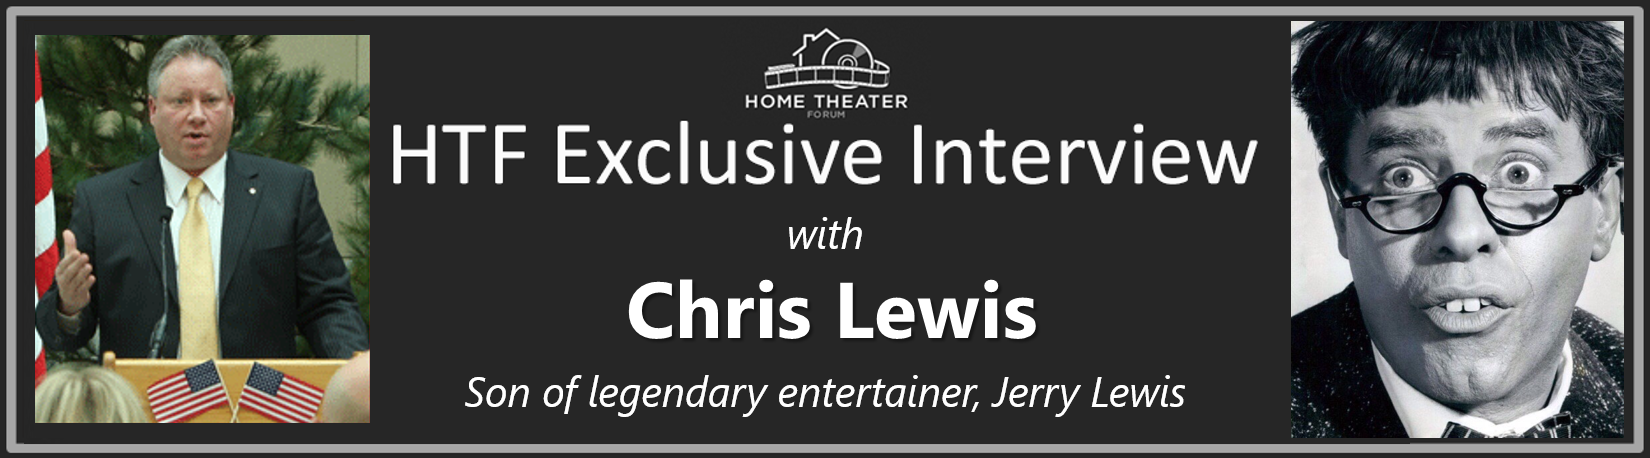 HTF-Chris_Lewis_Interview2.